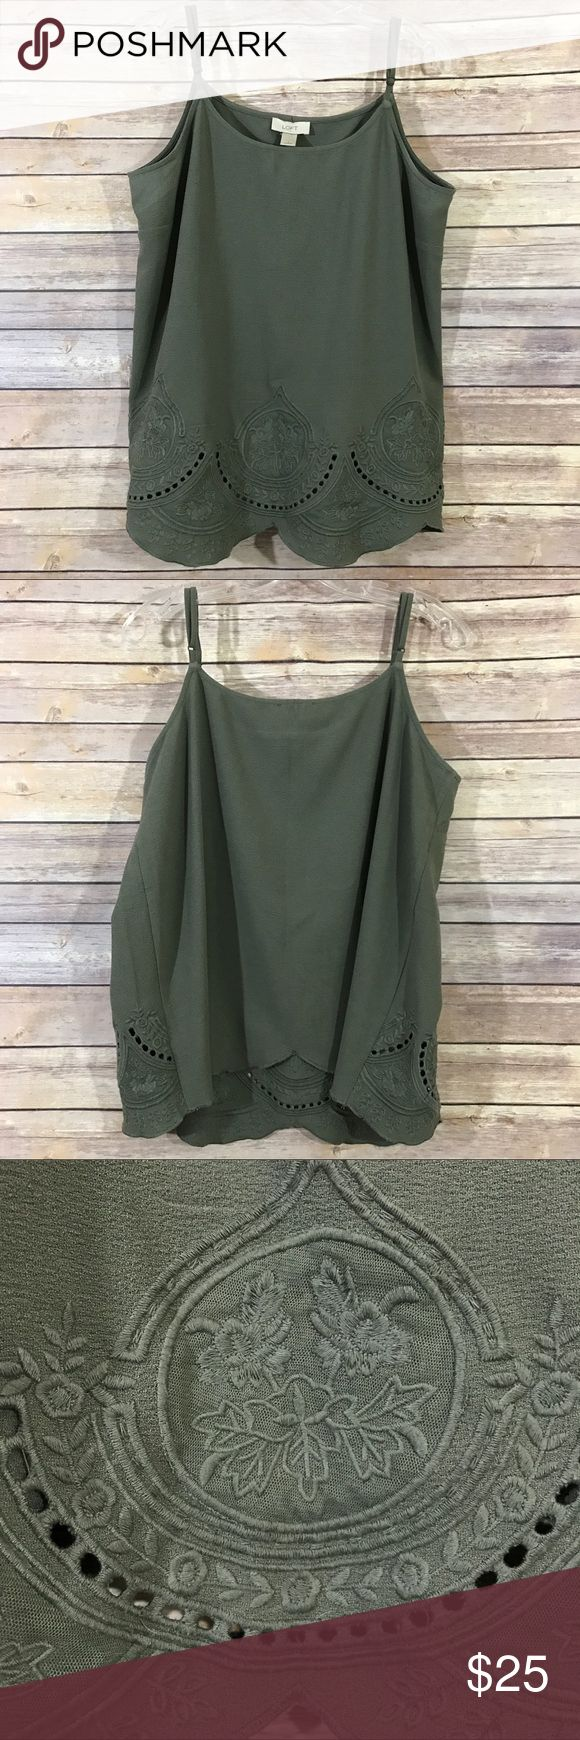 "Loft embroidered detail olive green cami tank, L This gorgeous Loft olive green cami tank is a perfect layering piece to wear with shorts now and later in fall under a sweater! It's a size Large and is in good preowned condition with no known flaws and light overall wear. It measures 22"" flat across the bust and is 28"" long. LOFT Tops Tank Tops"